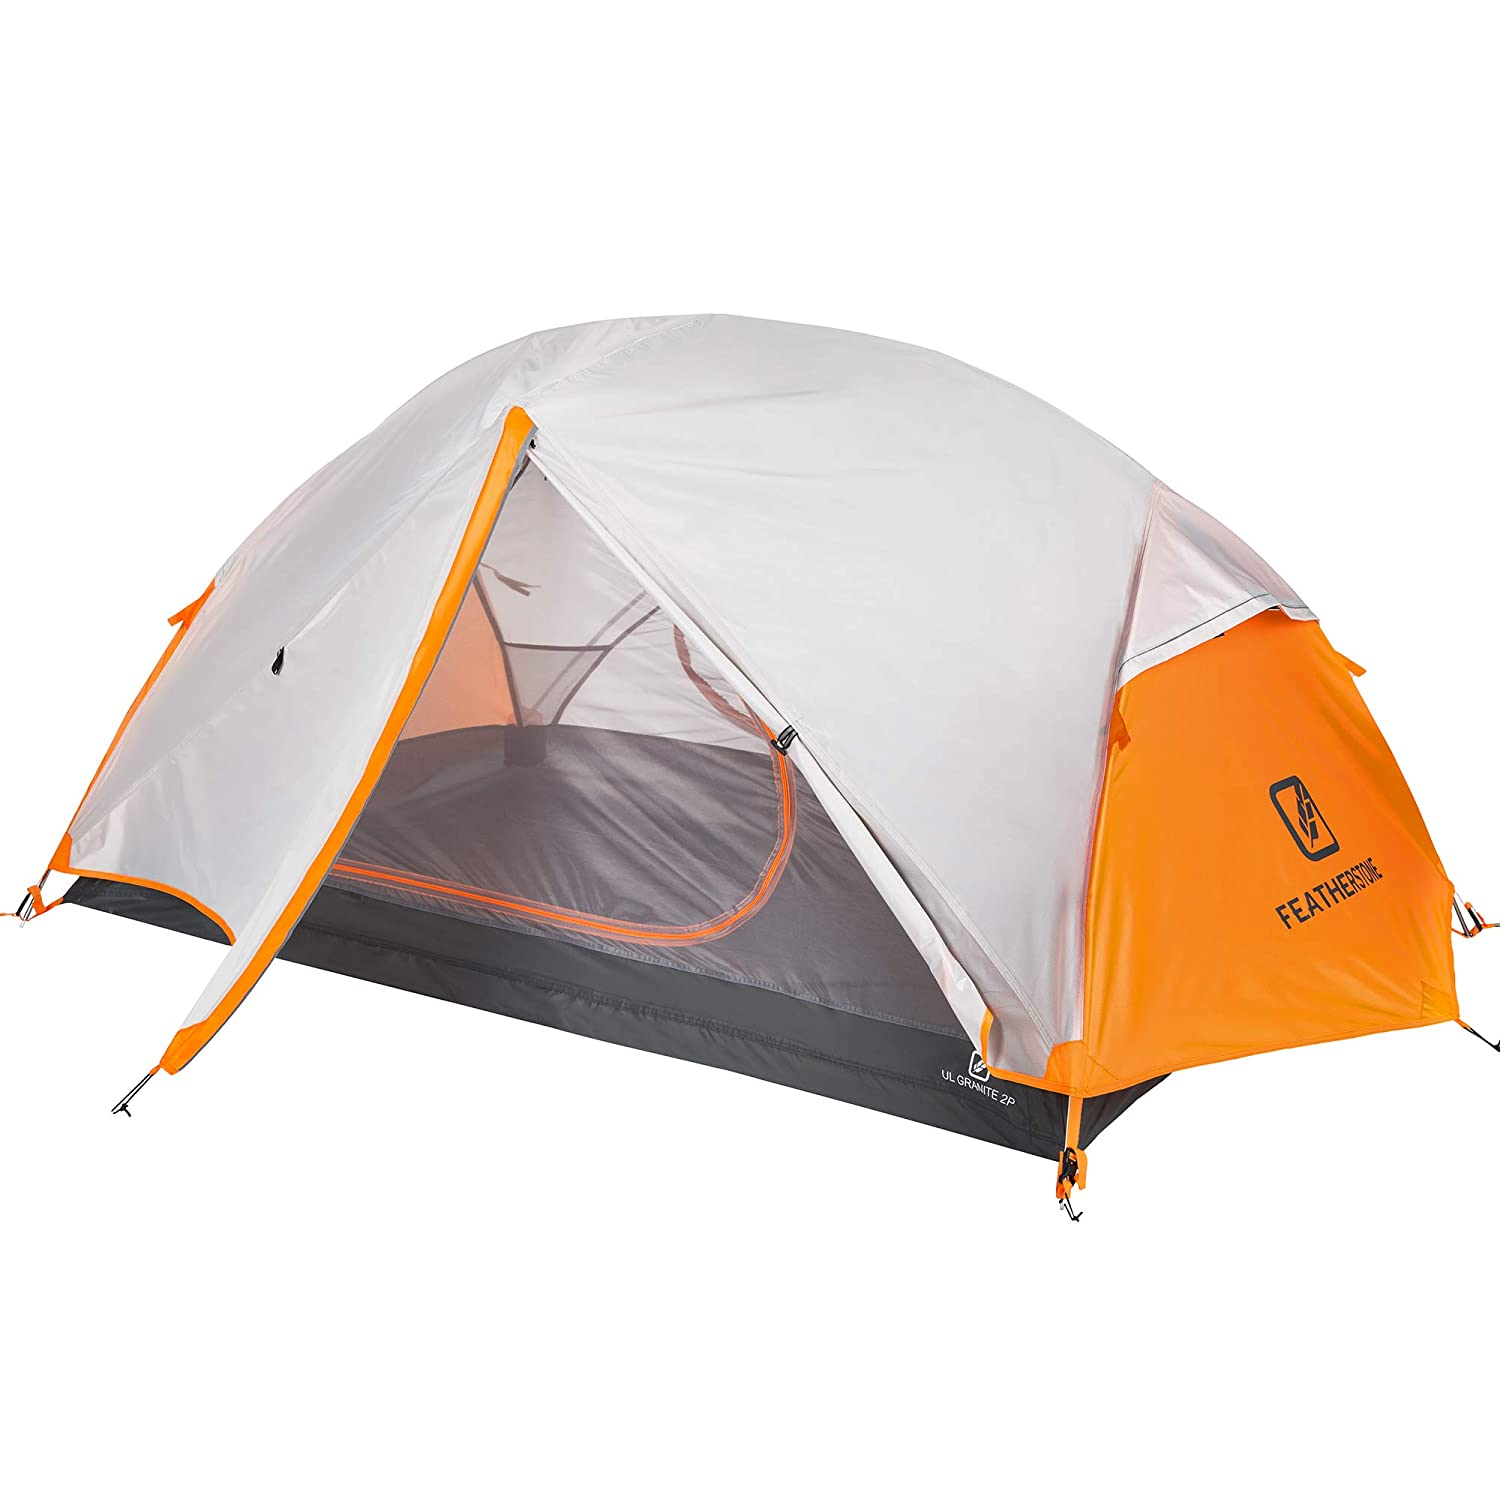 Featherstone Outdoor UL Granite Backpacking 2 Person Tent for Ultralight 3 Season Camping